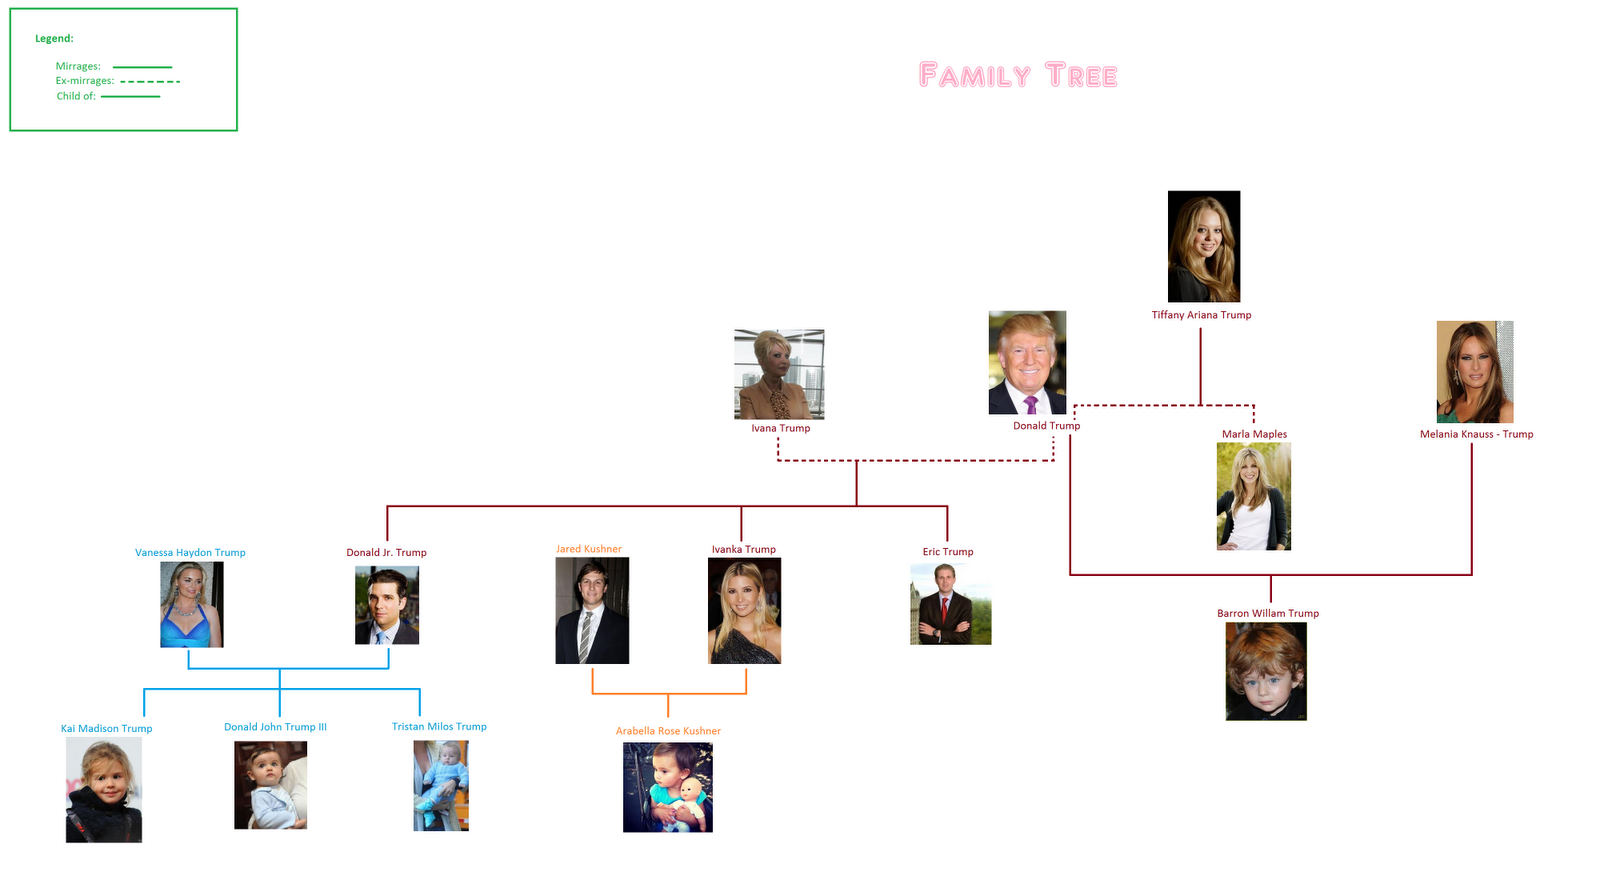 Family+Tree.png (1600×880)